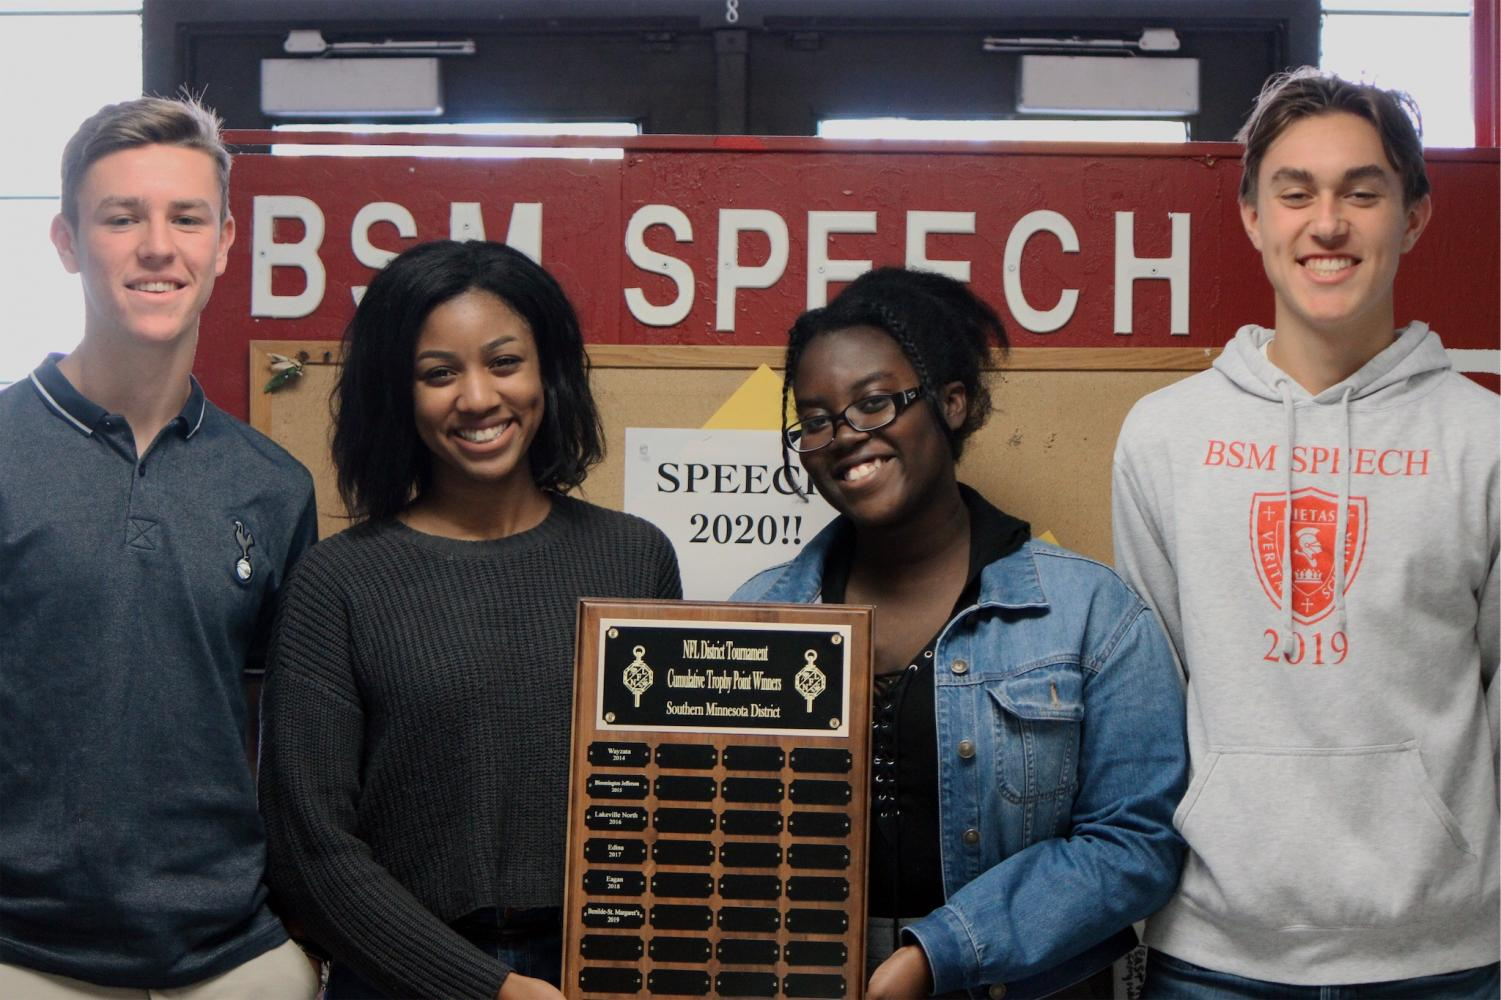 BSM speech team members win award after earning the most points and degrees in their district.